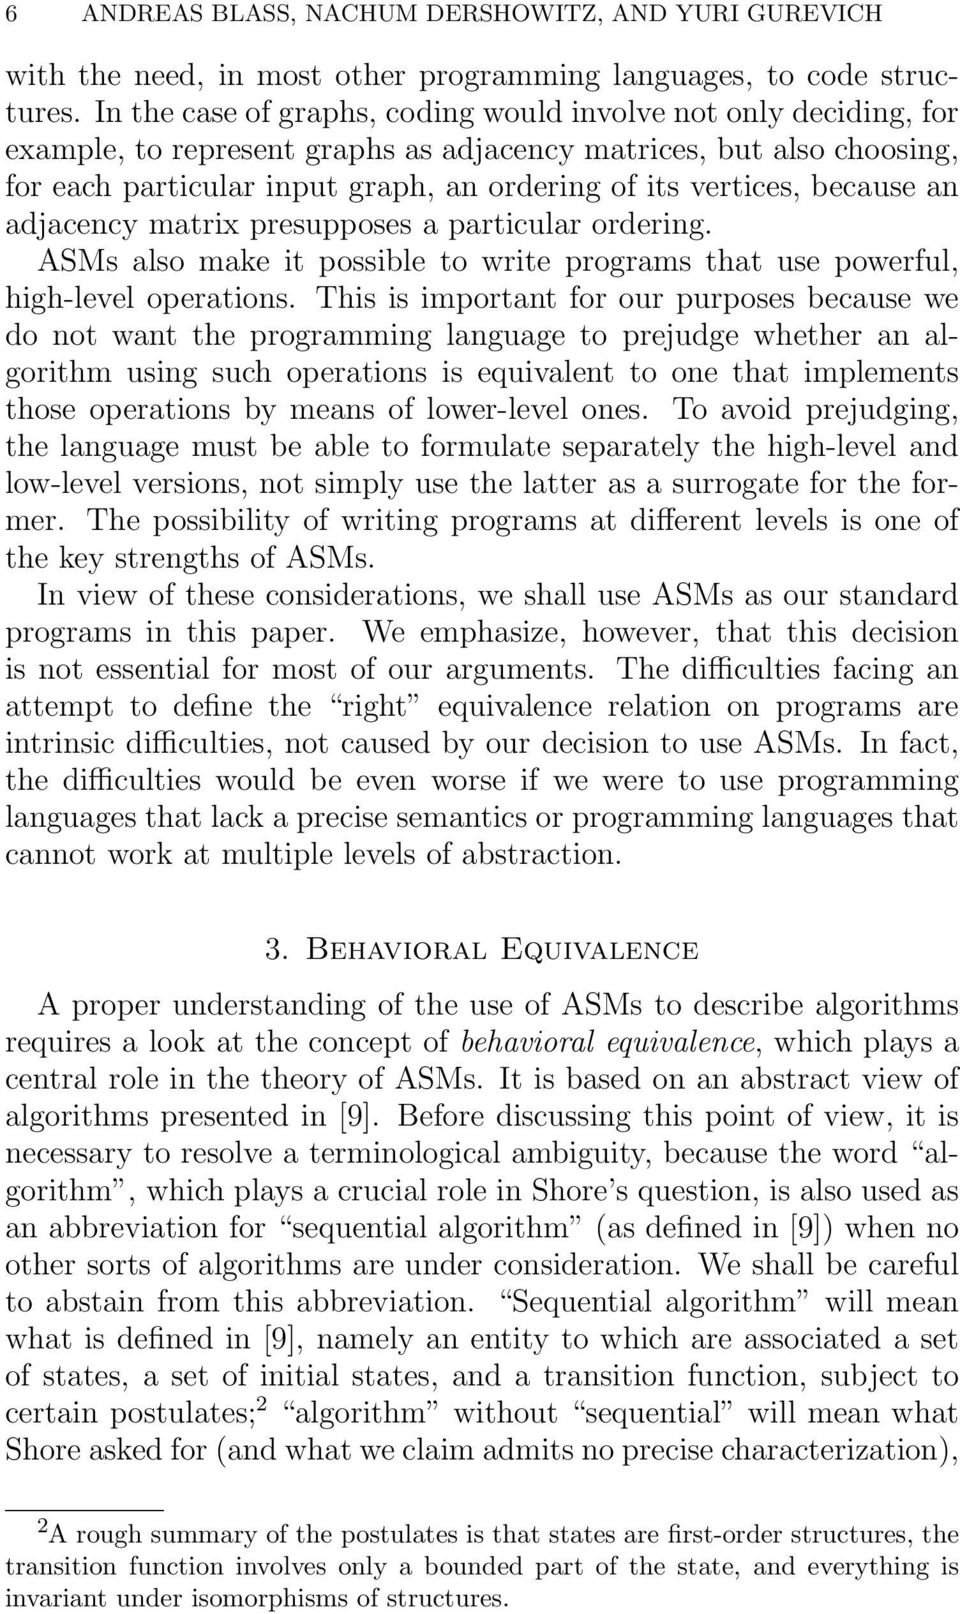 because an adjacency matrix presupposes a particular ordering. ASMs also make it possible to write programs that use powerful, high-level operations.